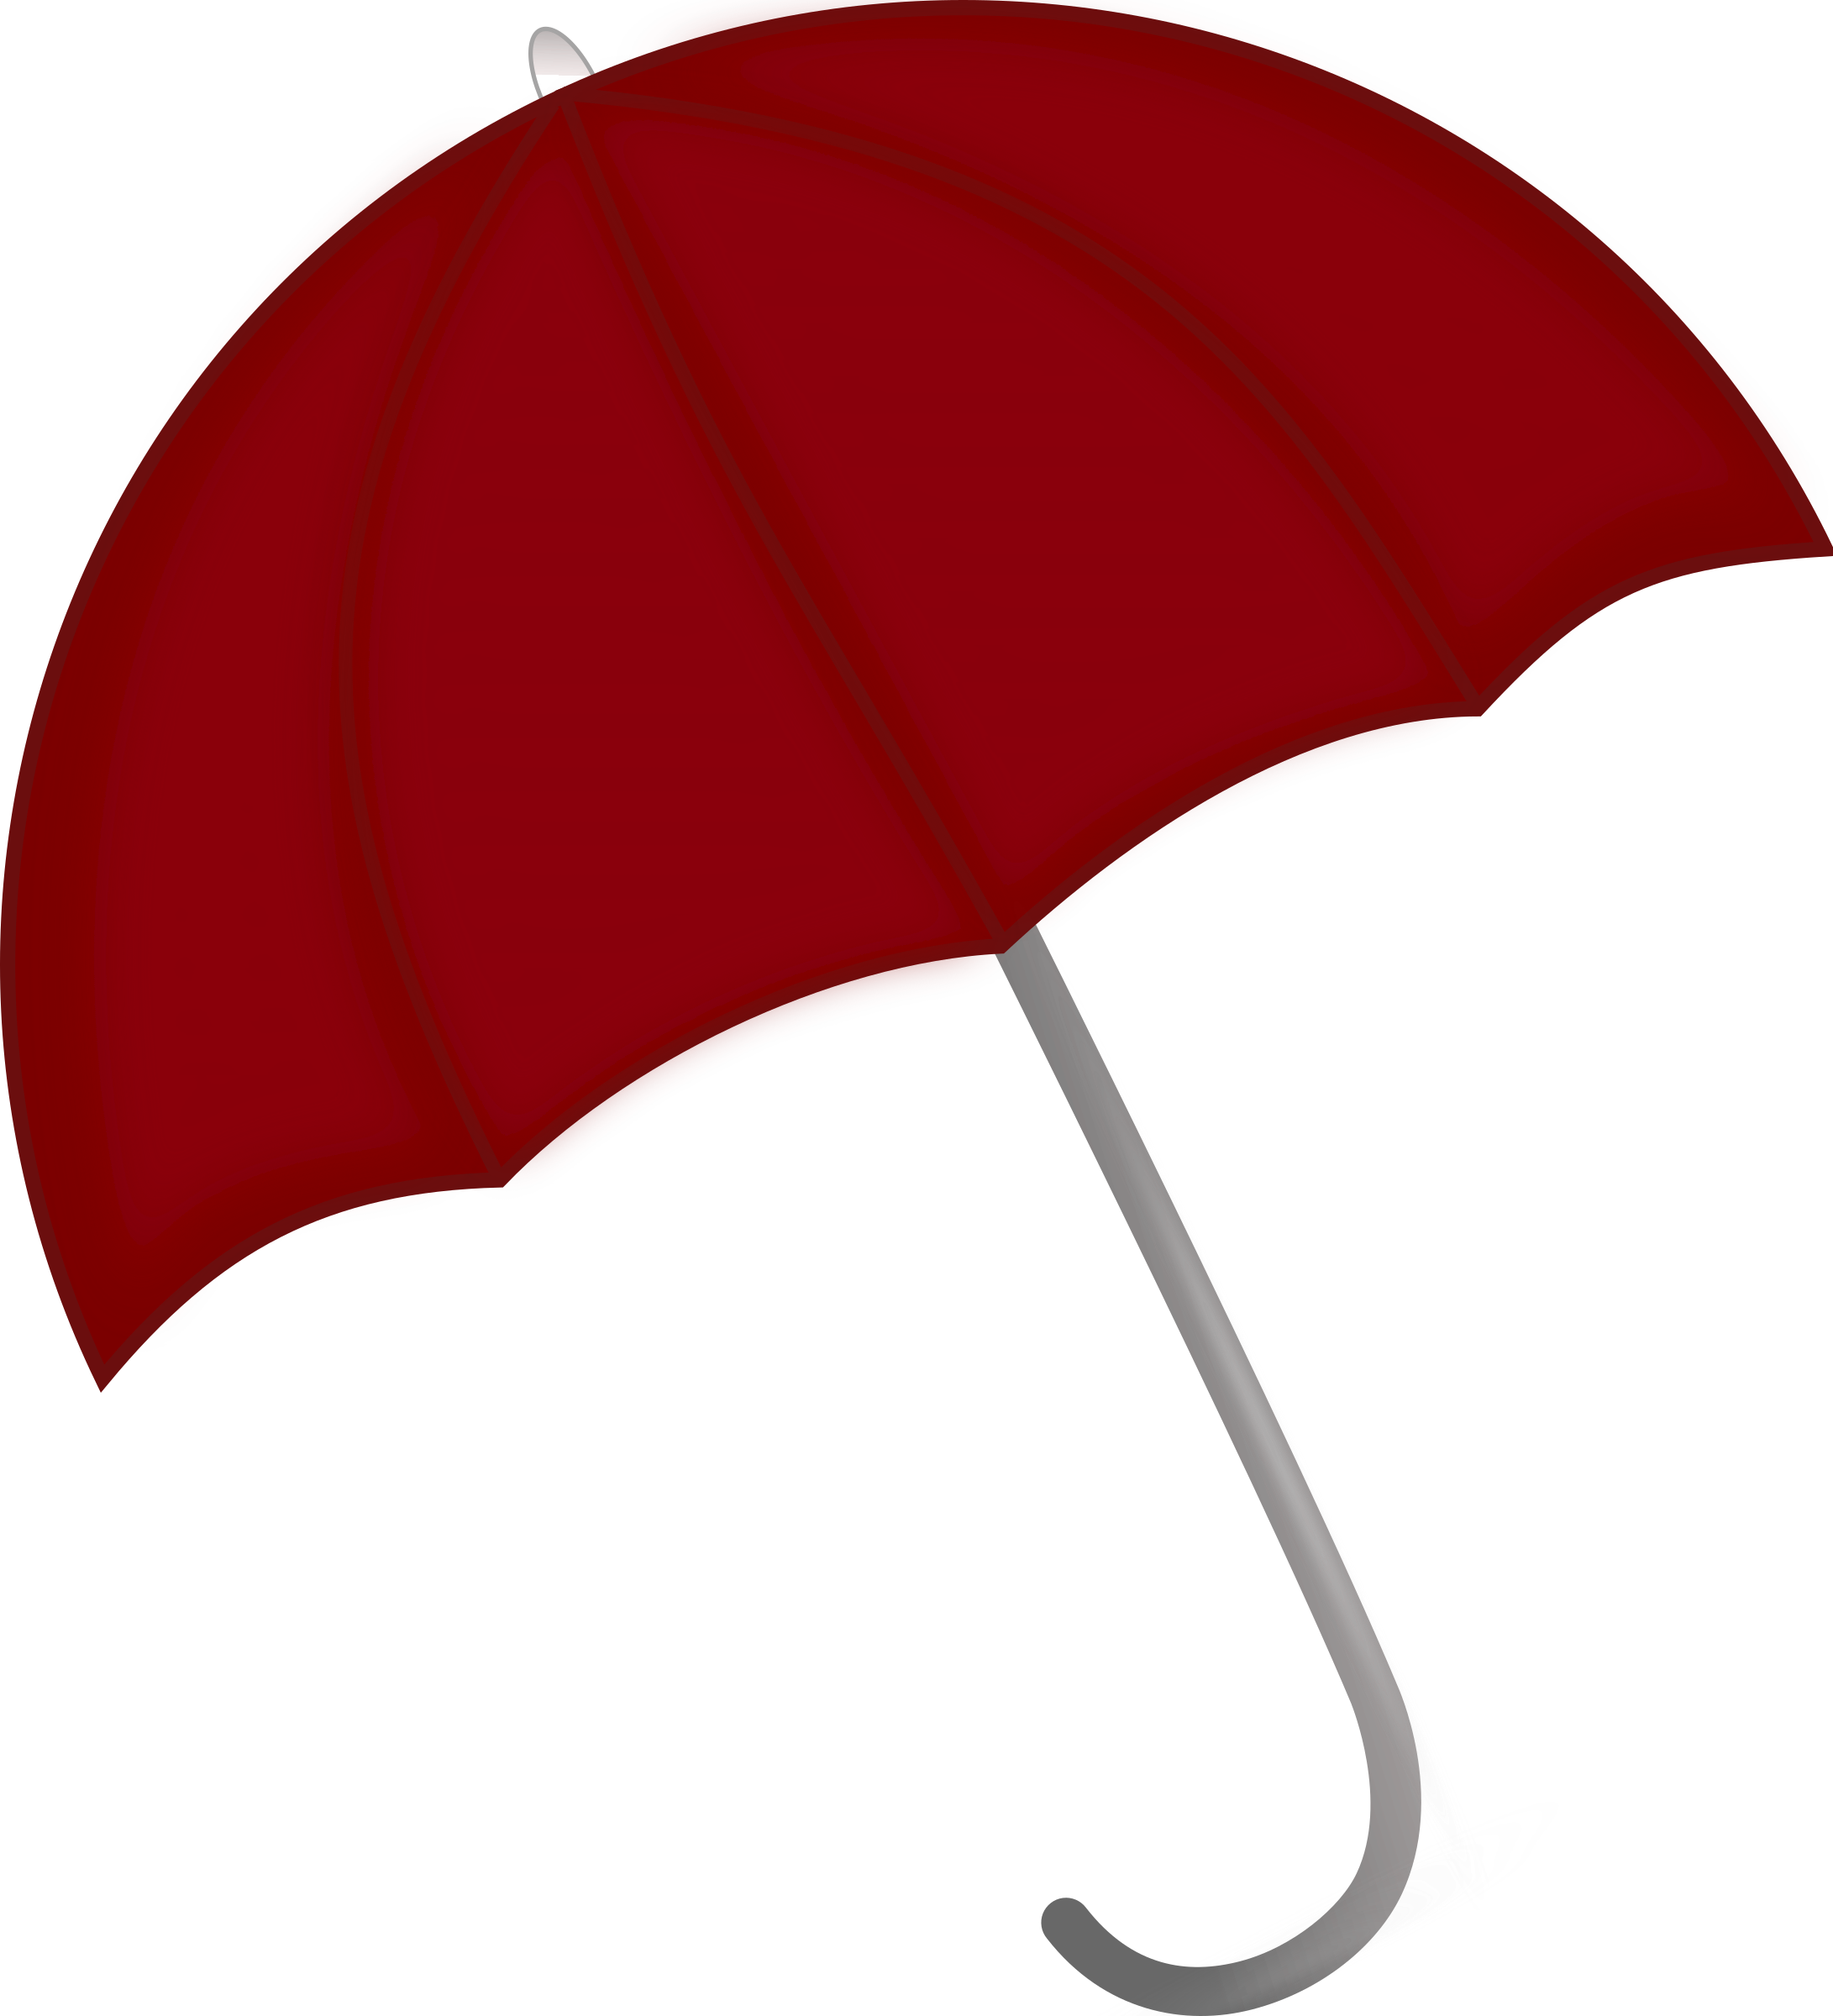 Red Umbrella by pixabella